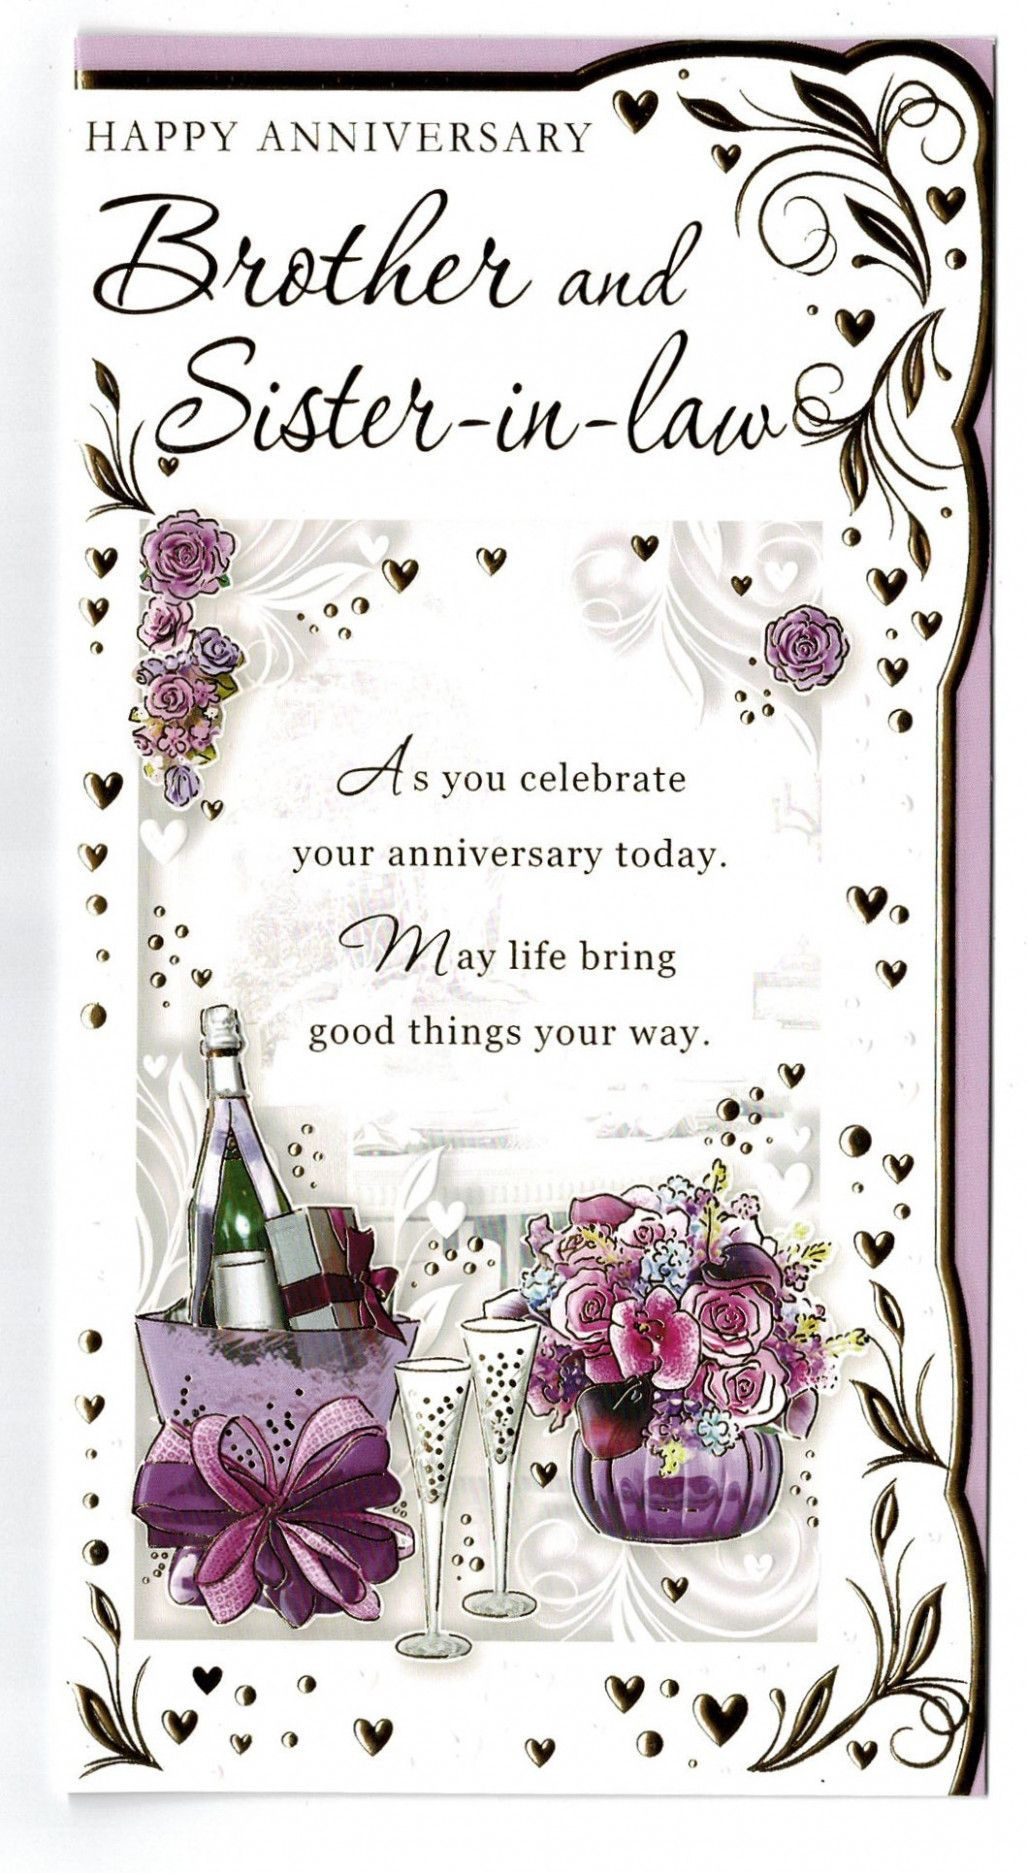 Brother And Sister In Law Anniversary Card With Sentiment Marriage Anniversary Cards Wedding Anniversary Cards Happy Anniversary Sister